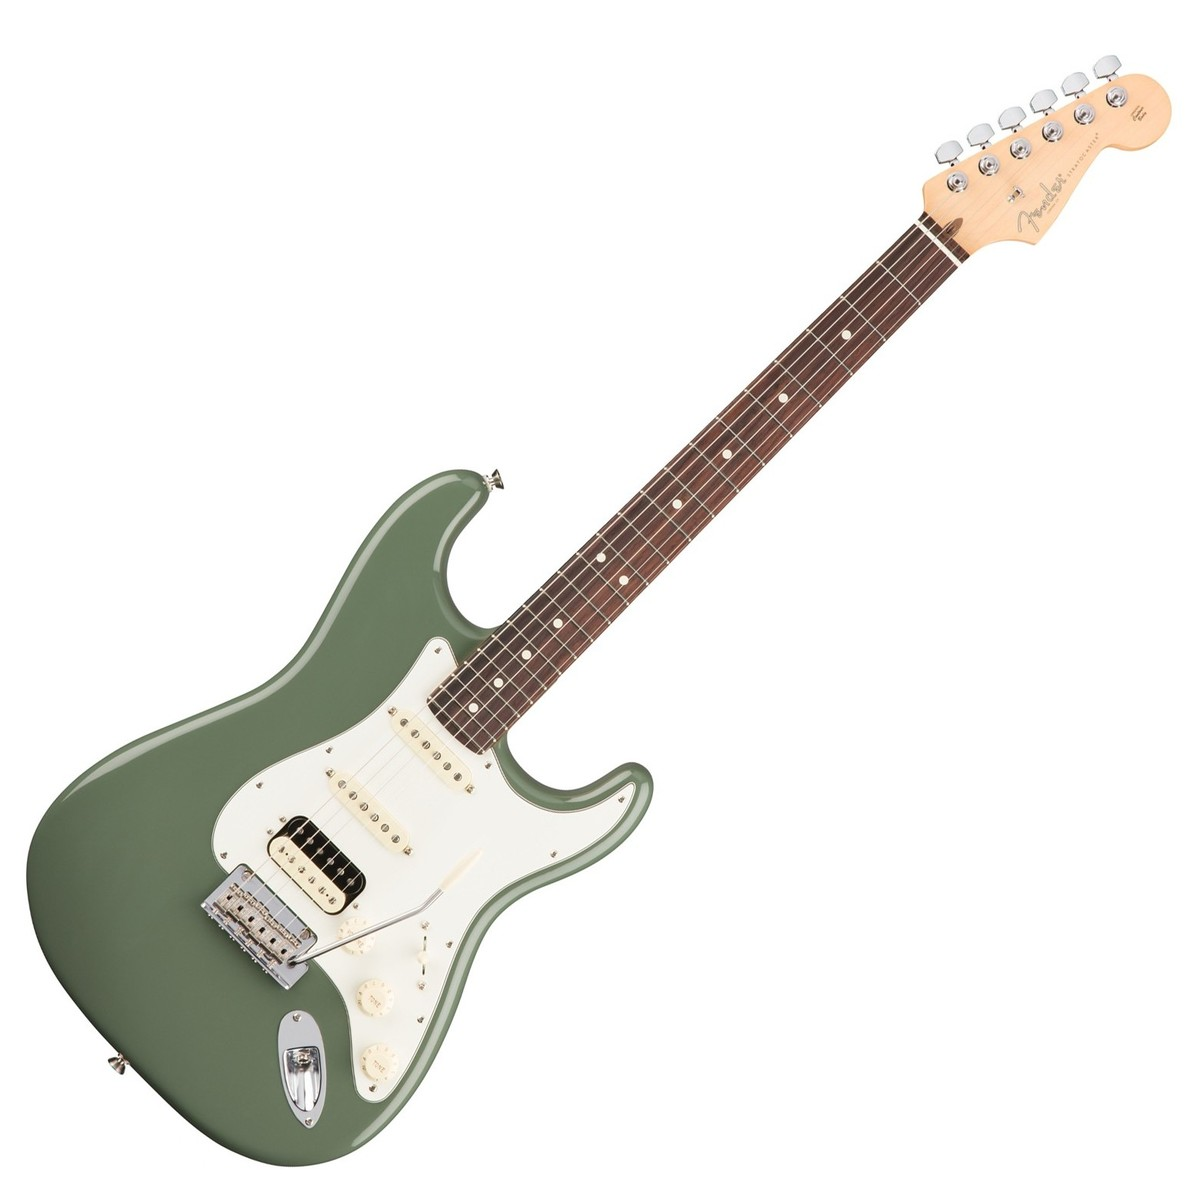 fender american pro stratocaster hss rw antique olive at gear4music. Black Bedroom Furniture Sets. Home Design Ideas